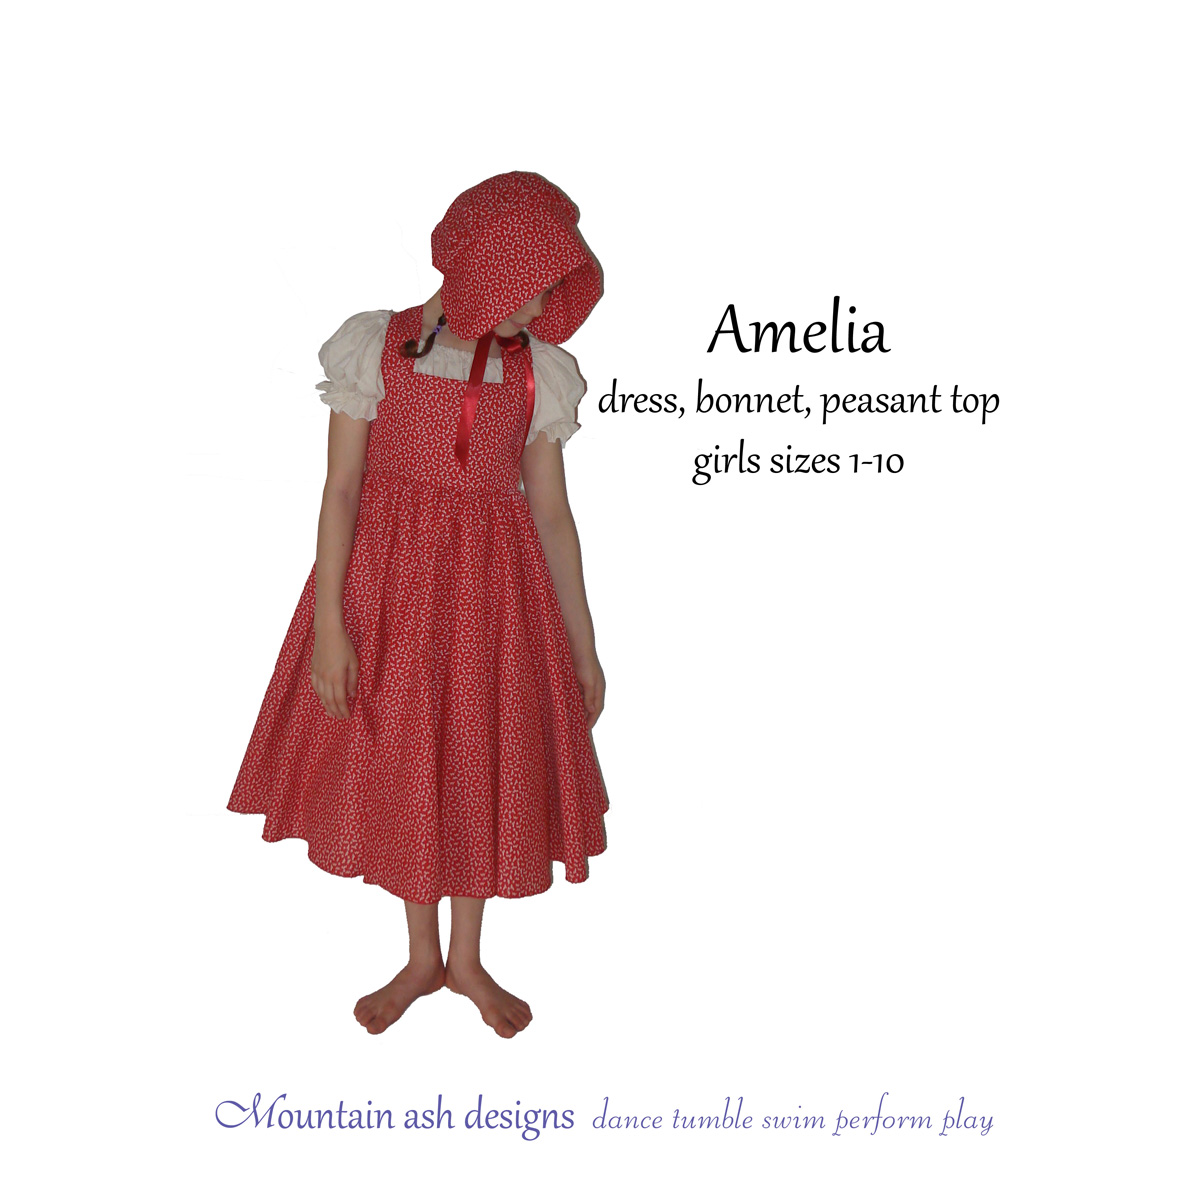 Amelia Colonial Dress and Bonnet Costume in Girls Sizes 1-10